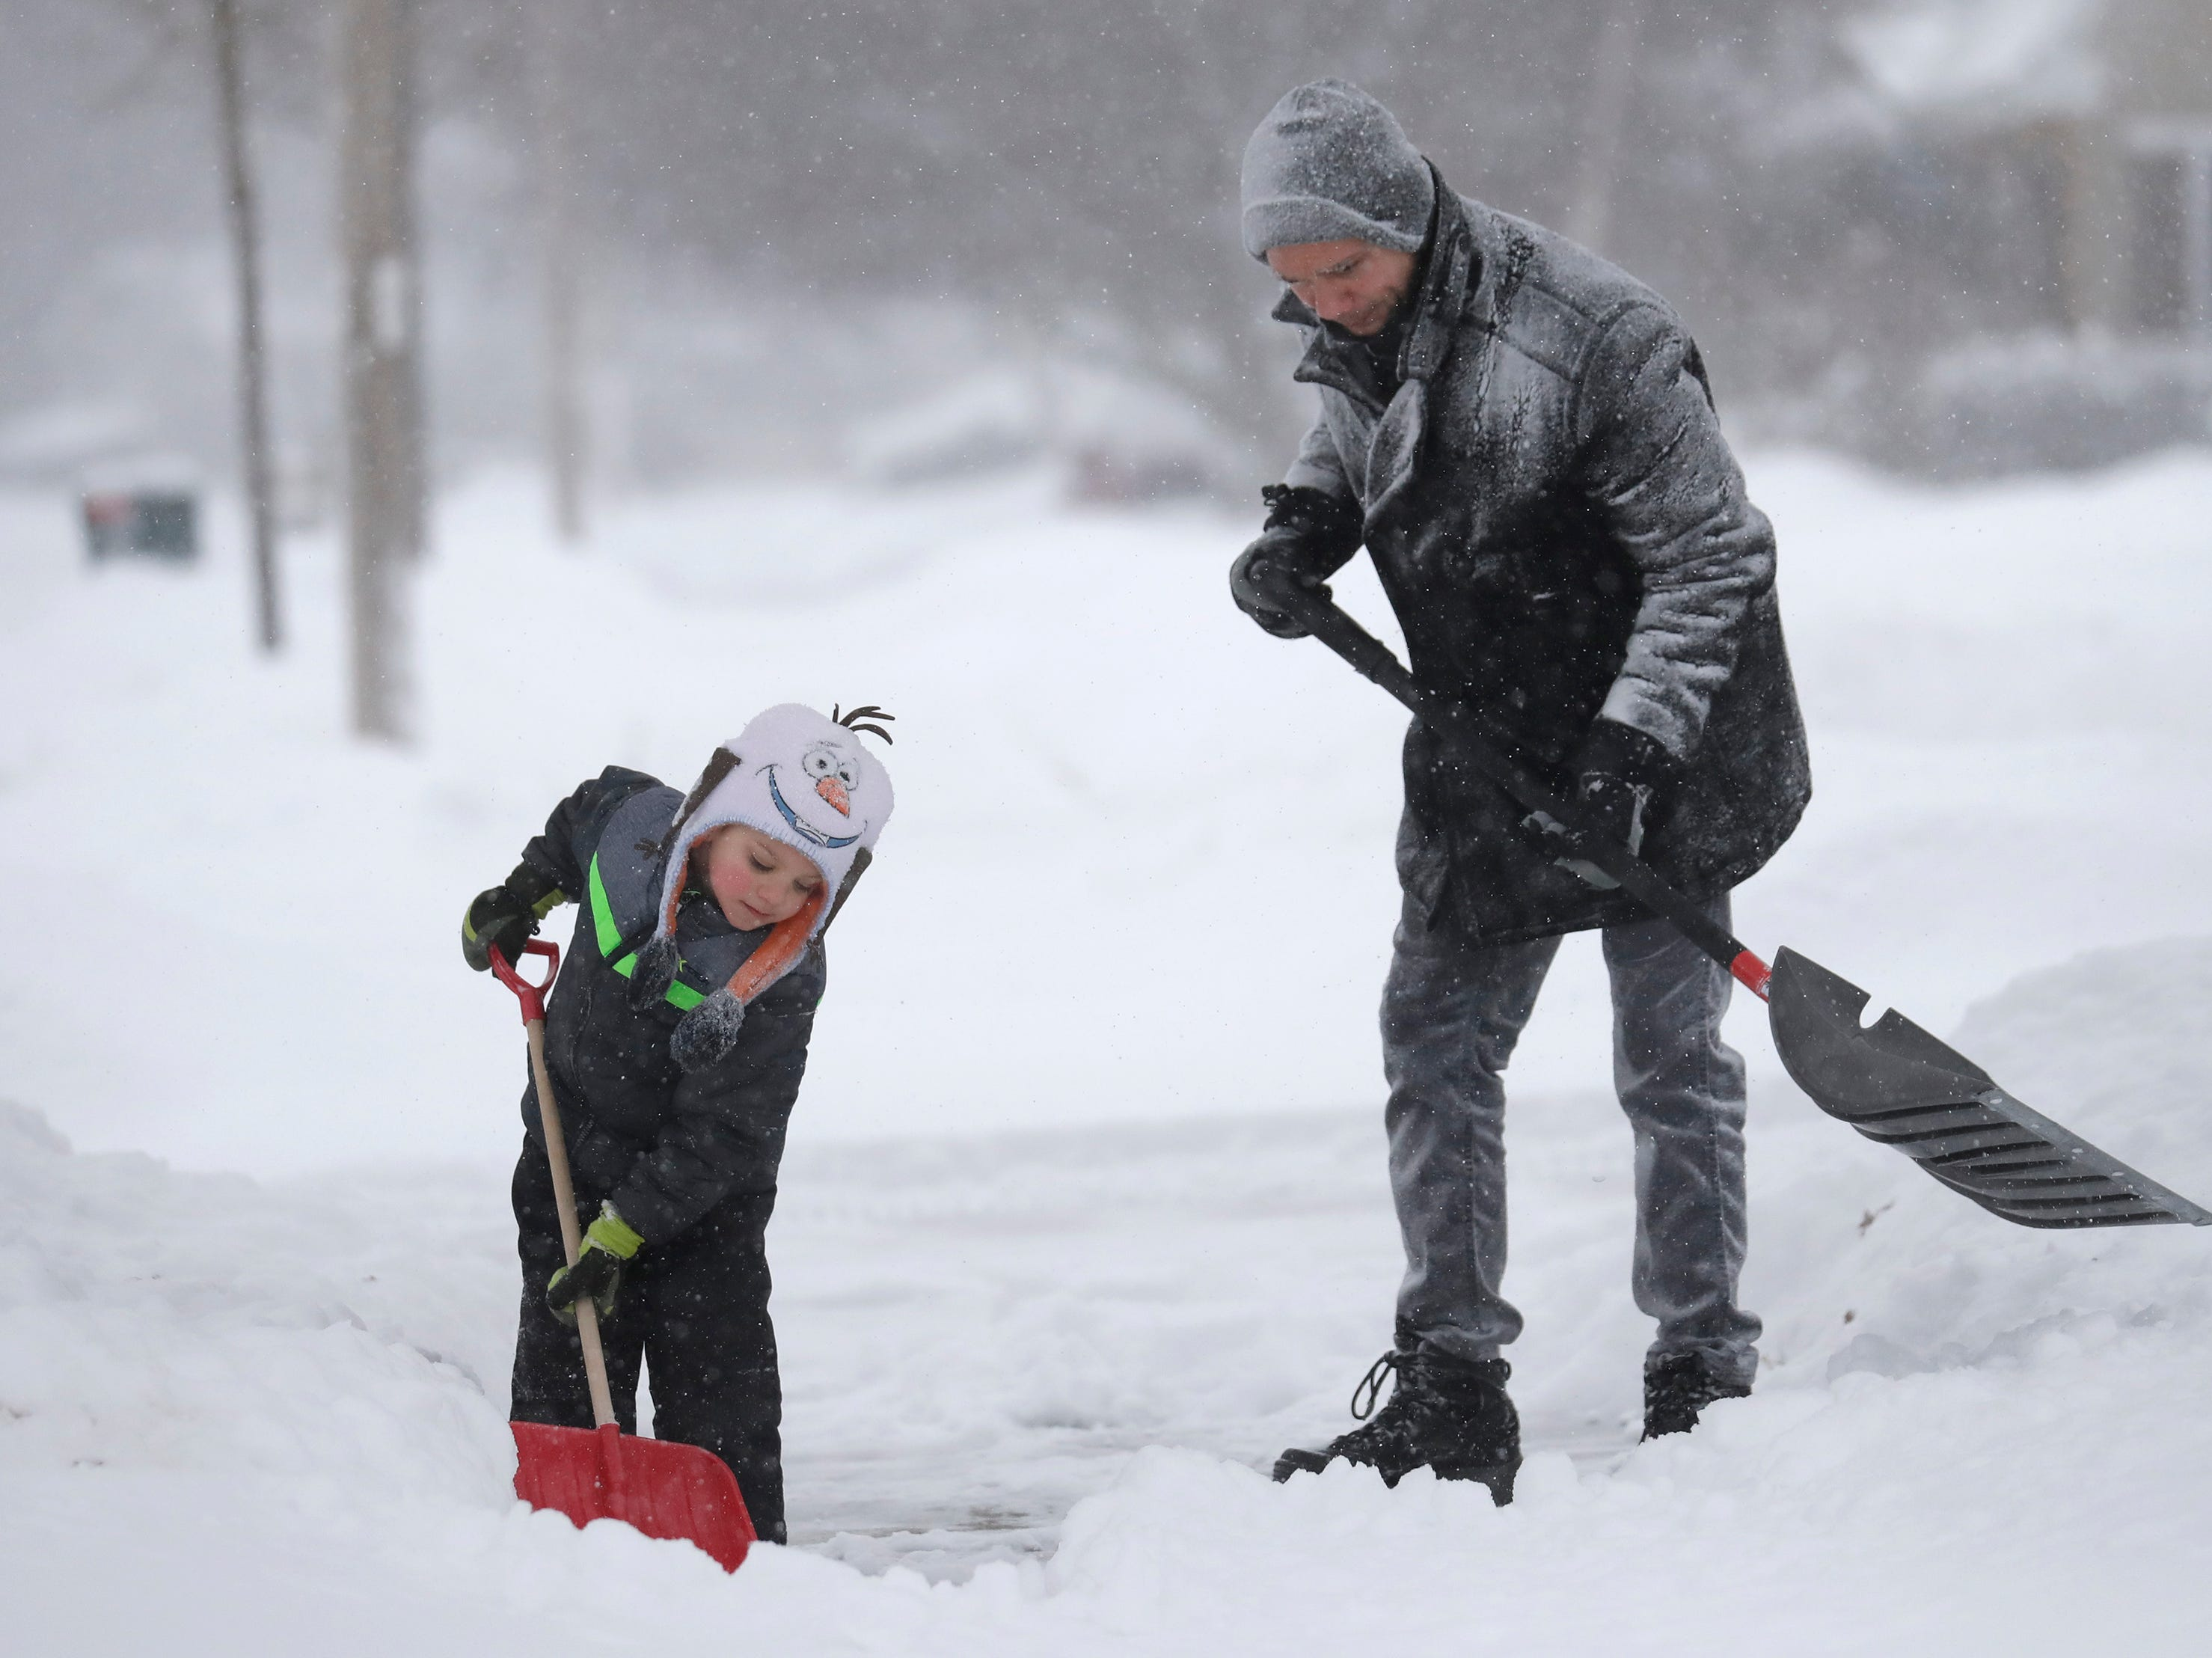 David Liebhard gets a little help from his son Levi, 4, as the two shovel their driveway during a snowstorm Monday, January 28, 2019, in Appleton, Wis.